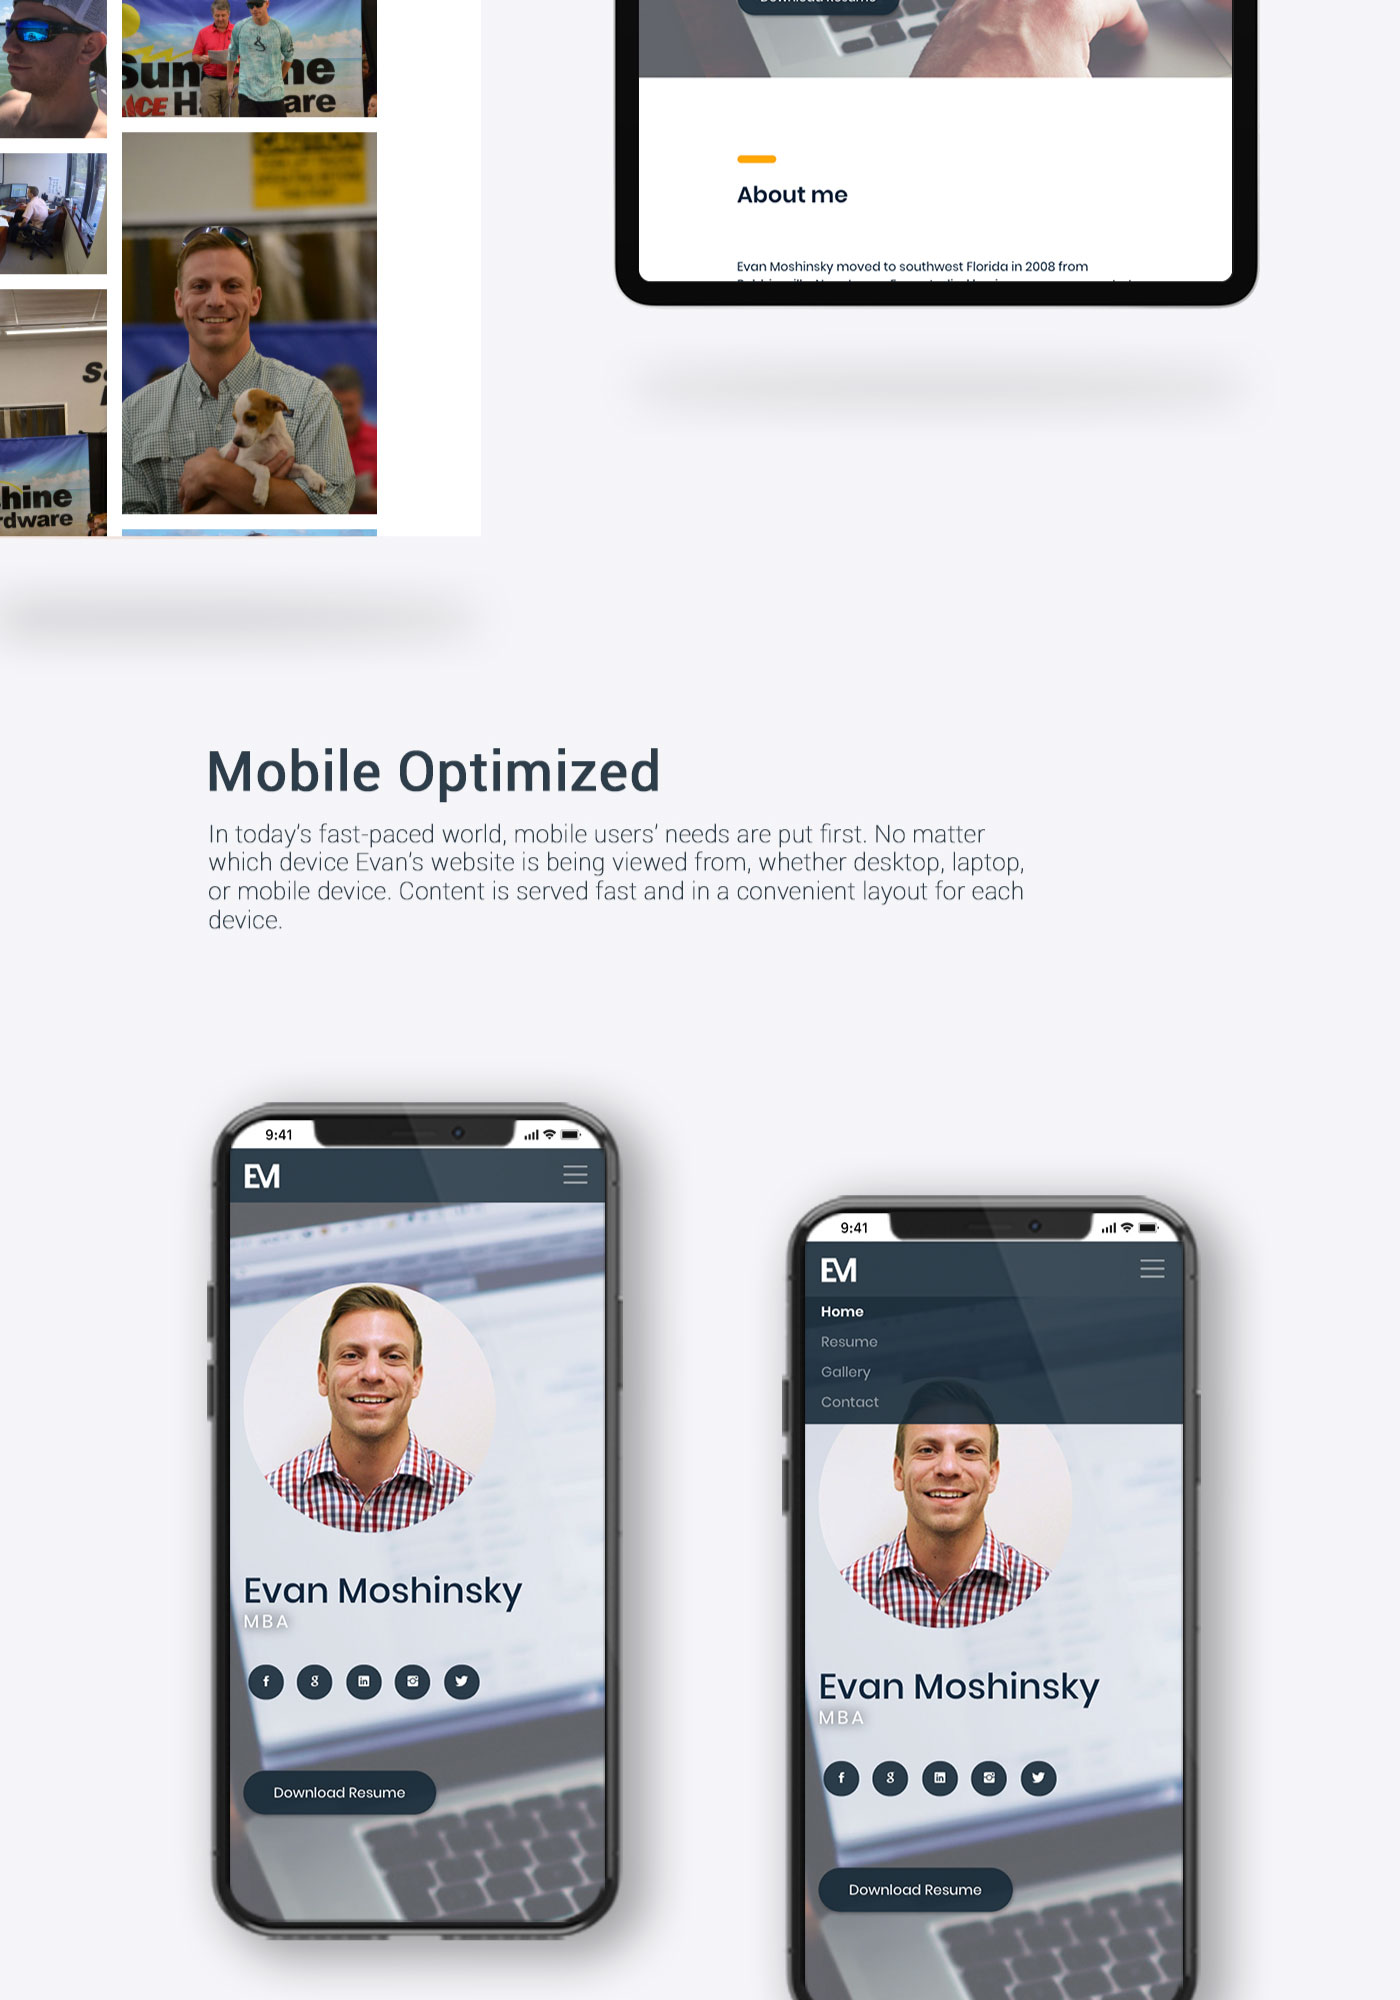 Evan Moshinsky's mobile optimized website shown on iPhone